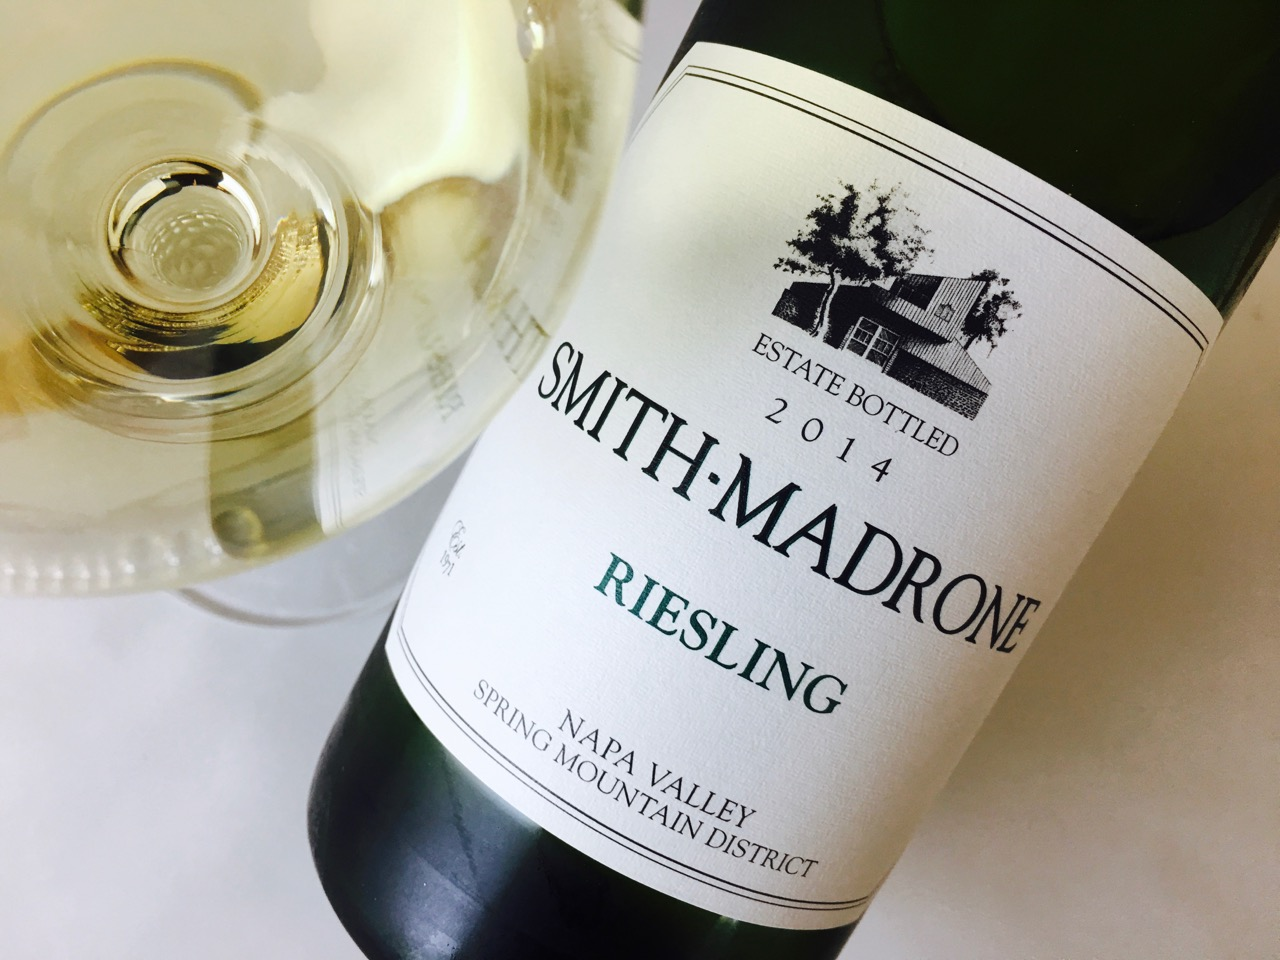 2014 Smith-Madrone Riesling Spring Mountain District Napa Valley